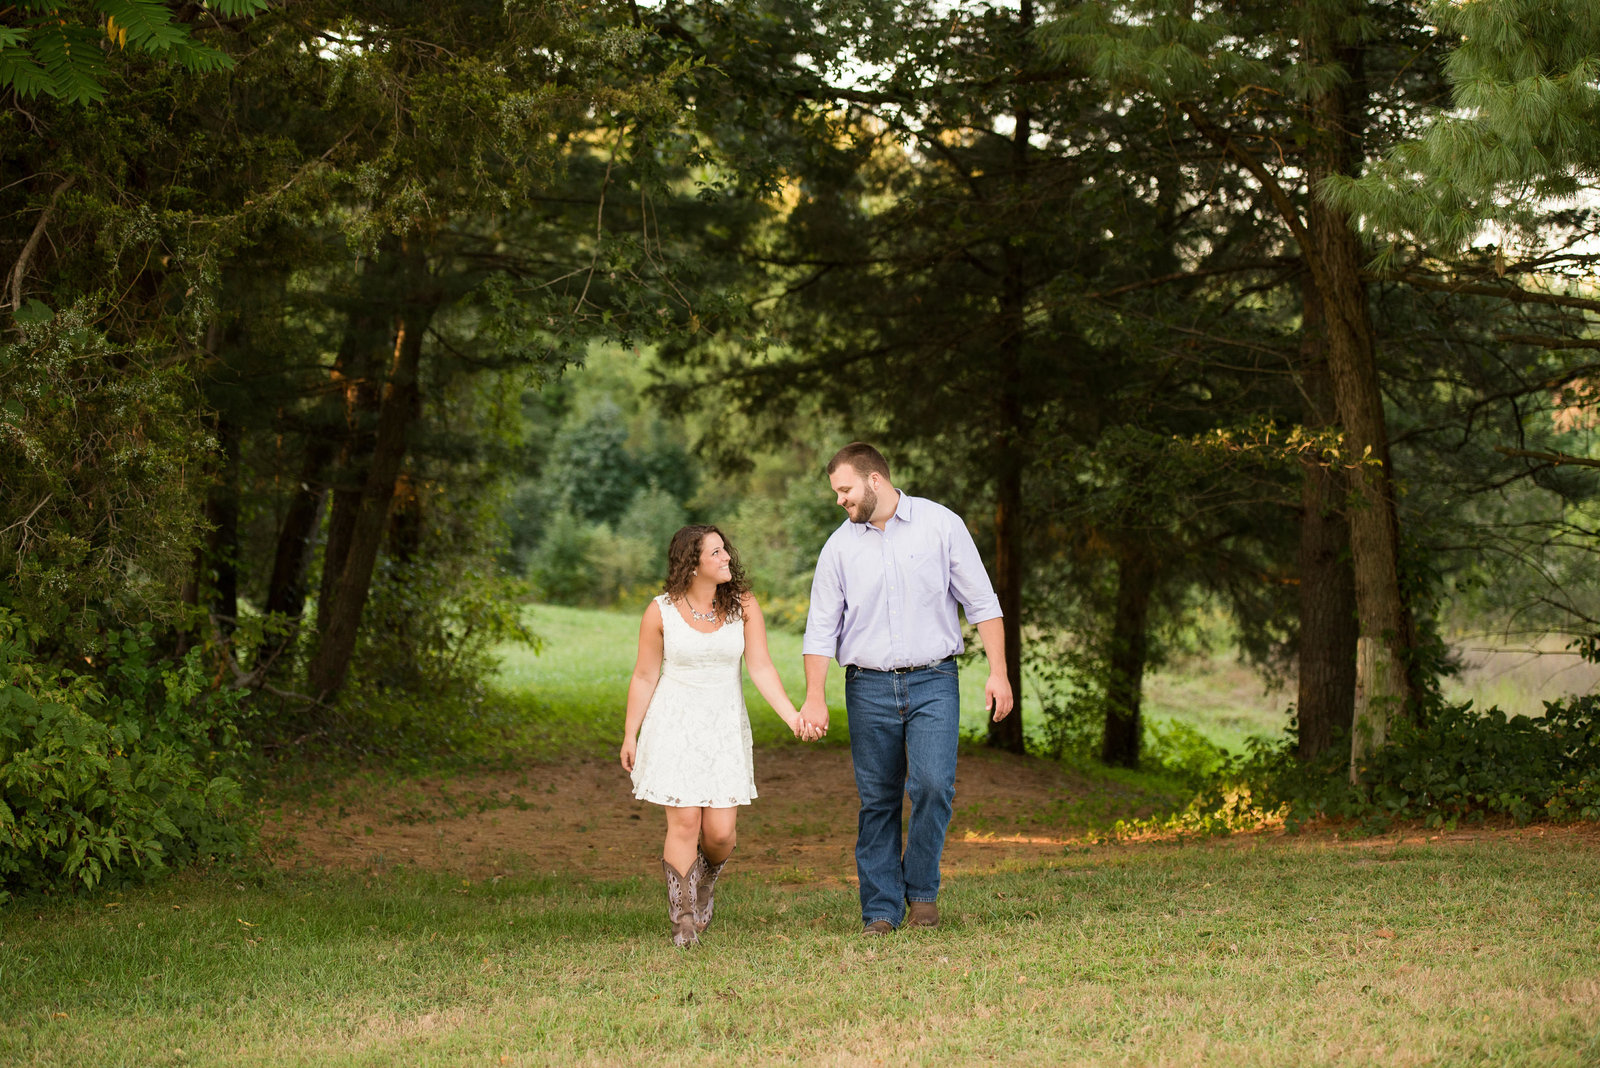 NJ_Rustic_Engagement_Photography131